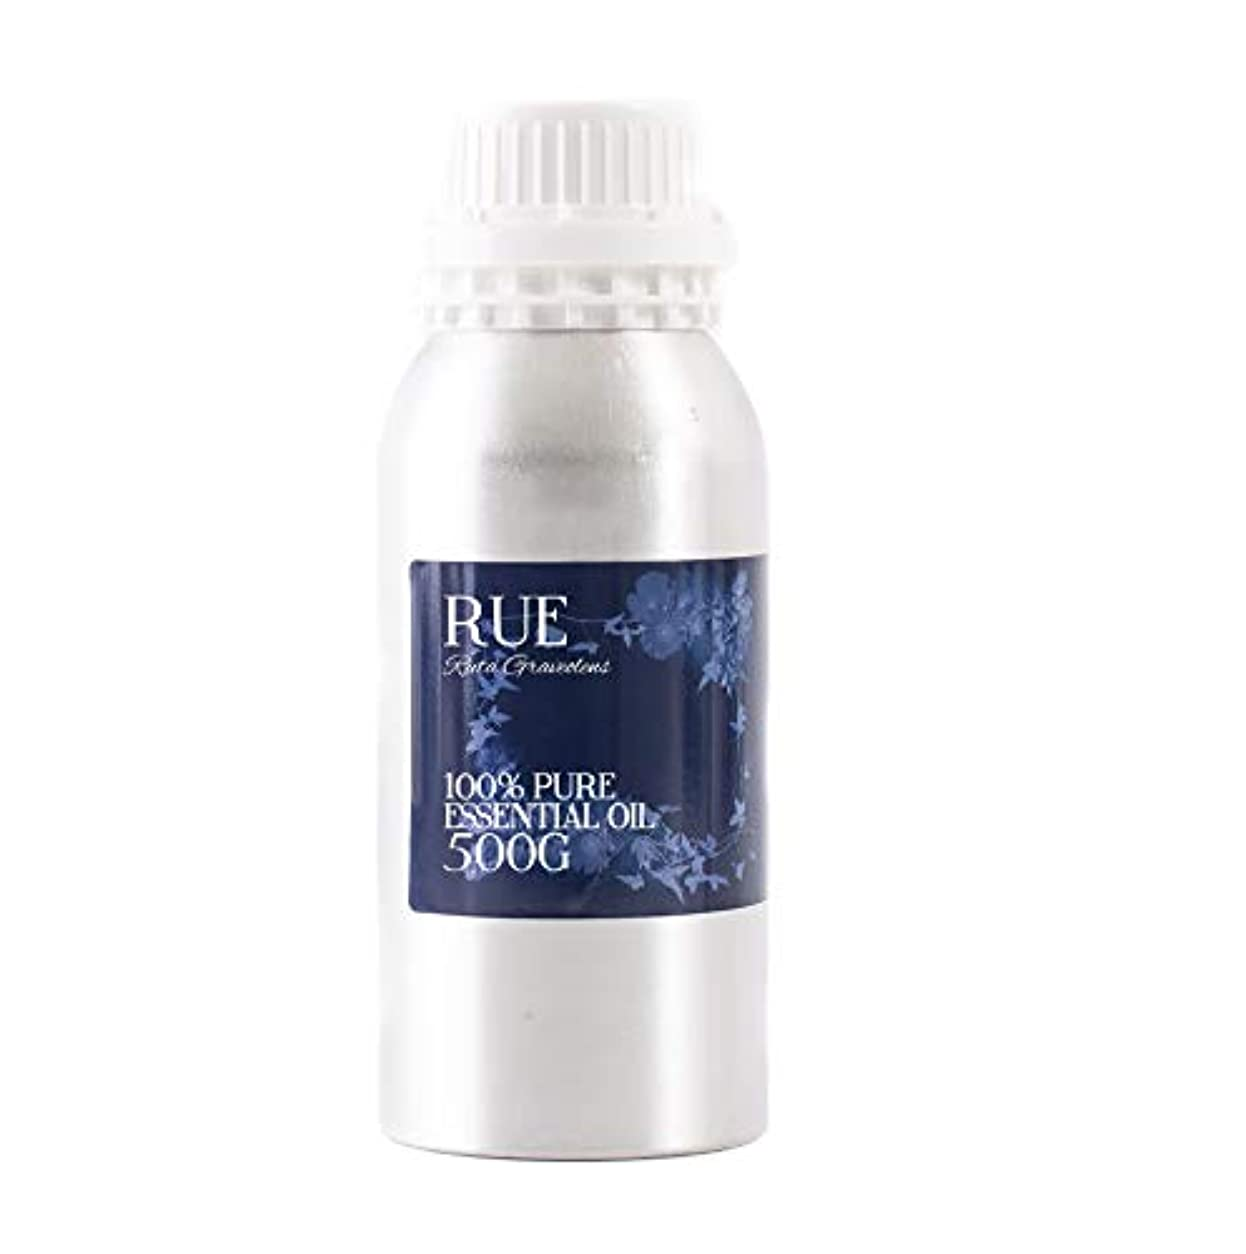 選出するブラウズデータムMystic Moments | Rue Essential Oil - 500g - 100% Pure